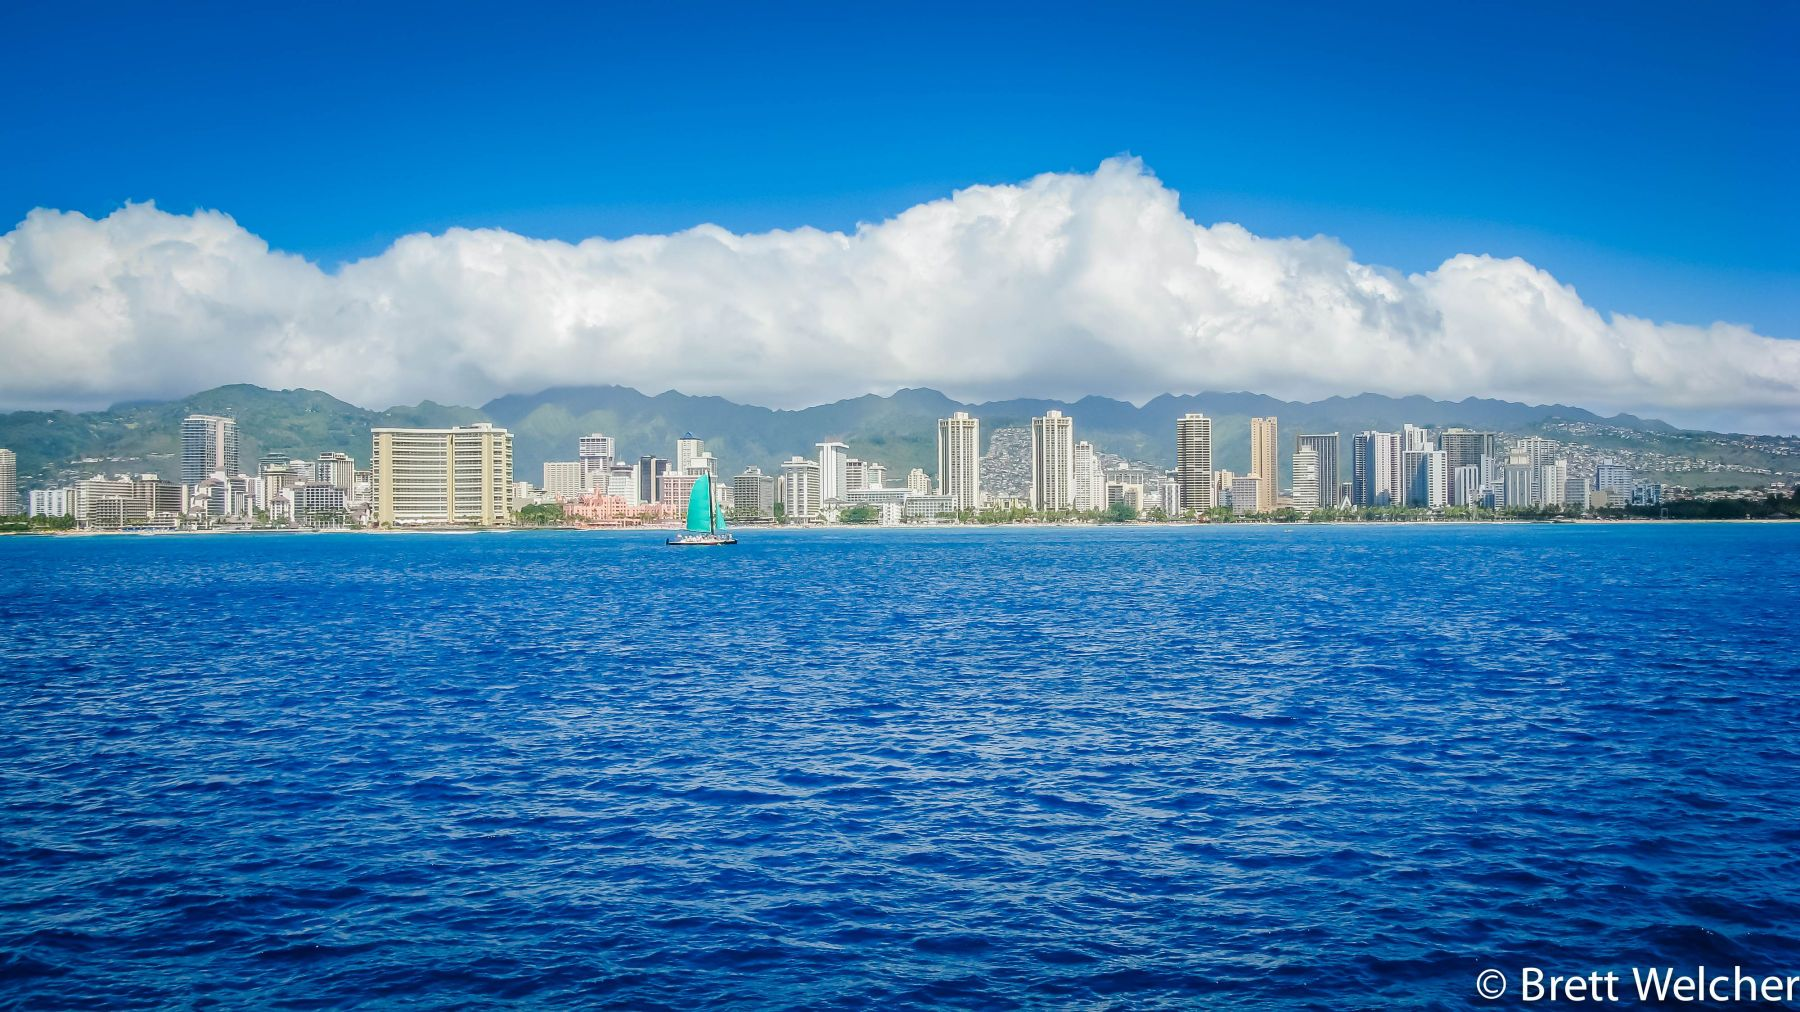 Tourism in Hawaii - Honolulu, Hawaii